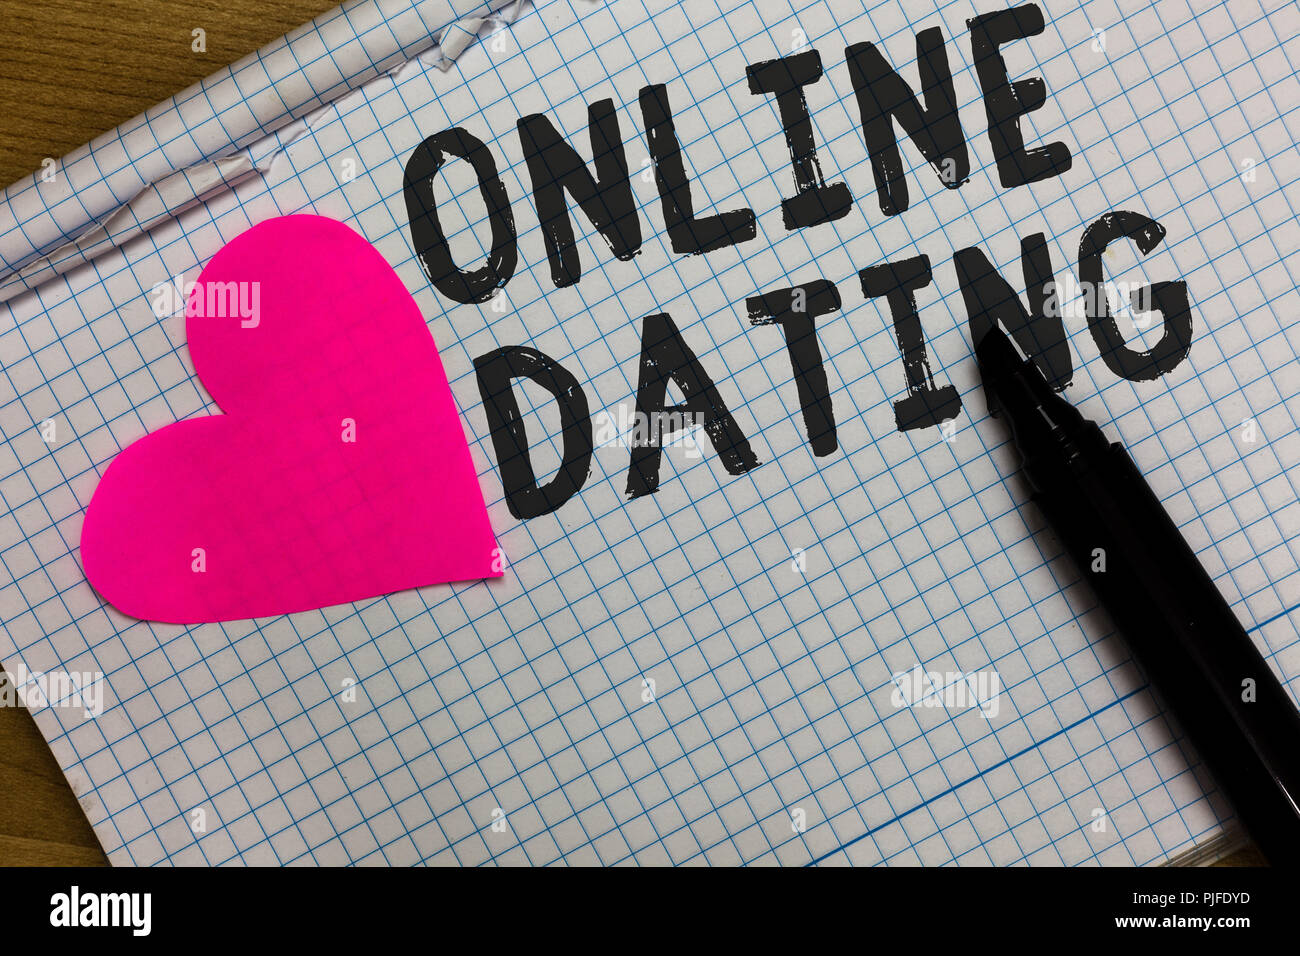 Alter Dating-Papier